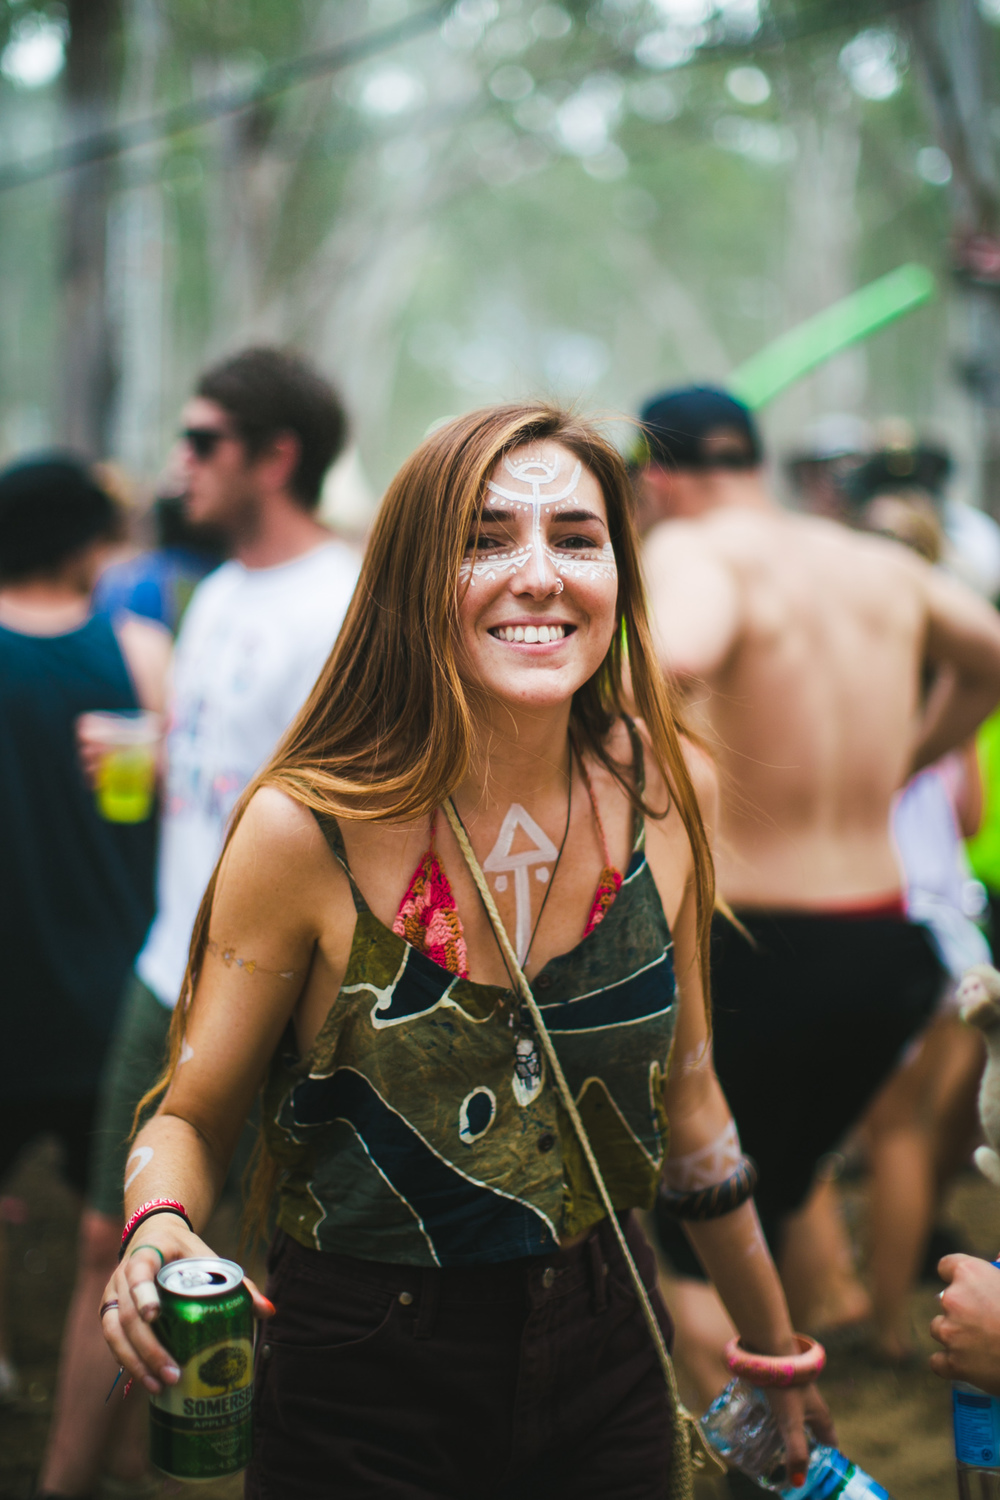 VOENA_STRAWBERRY_FIELDS_FESTIVAL_2014_PHOTOS_DOOF_AUSTRALIA-27.jpg